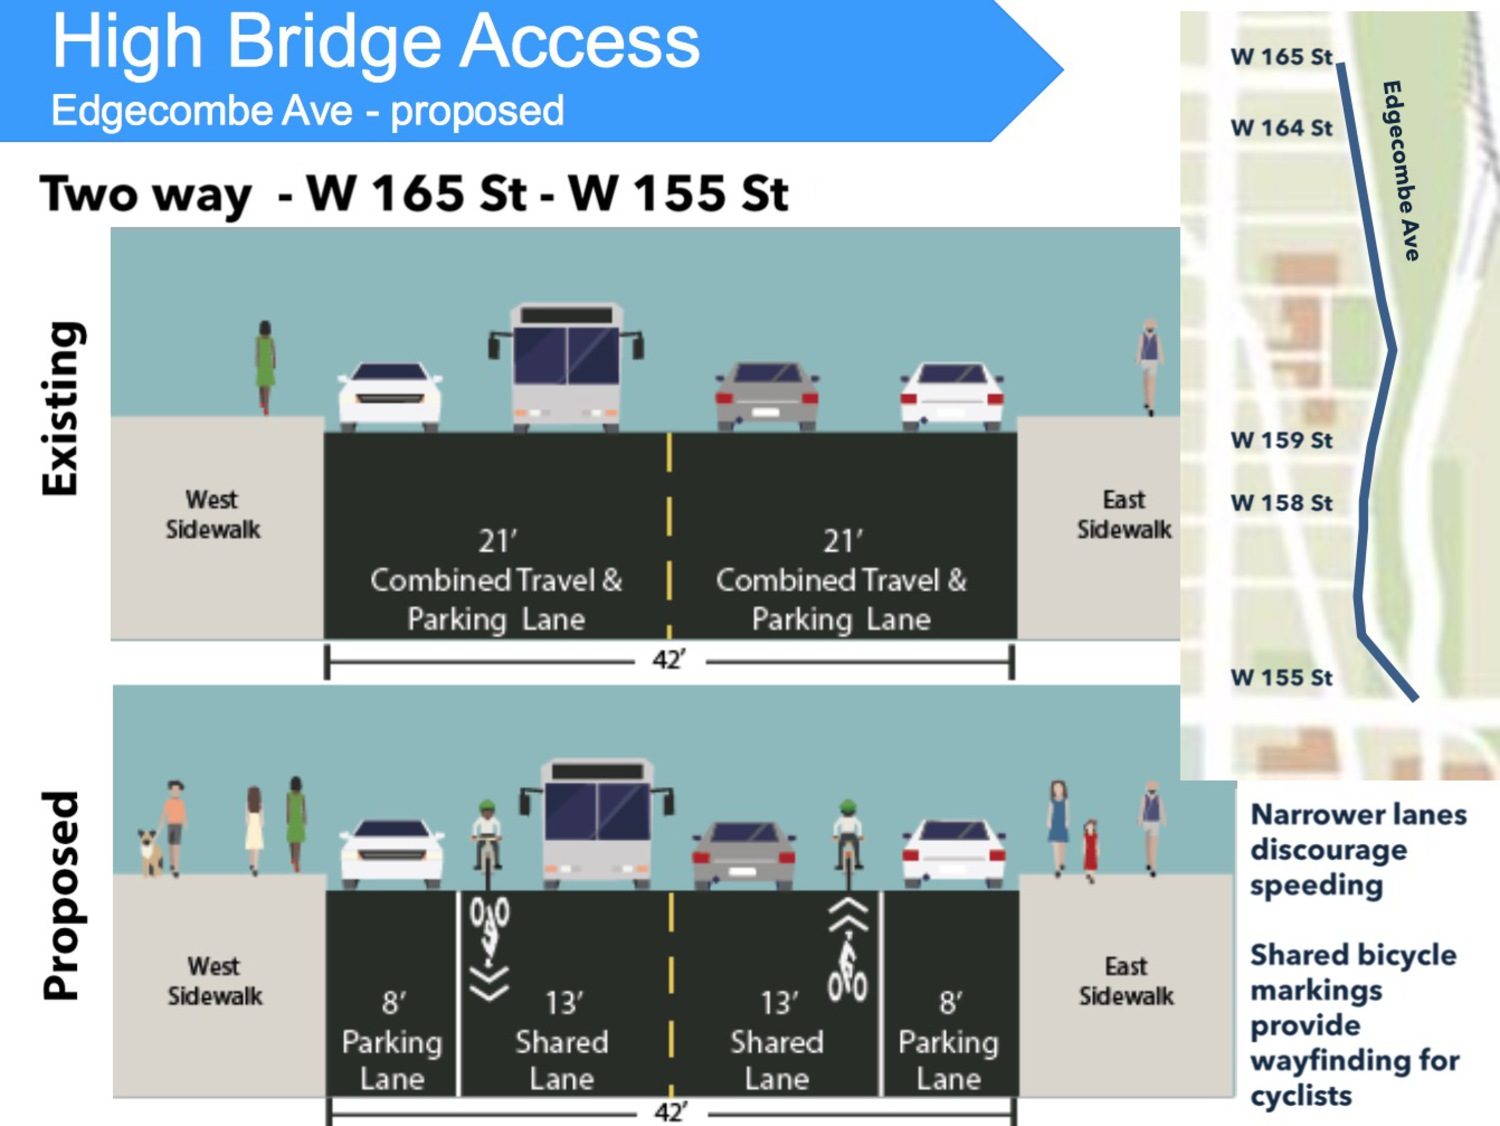 Protected bikeways are coming to Washington Heights, including Edgecombe Avenue